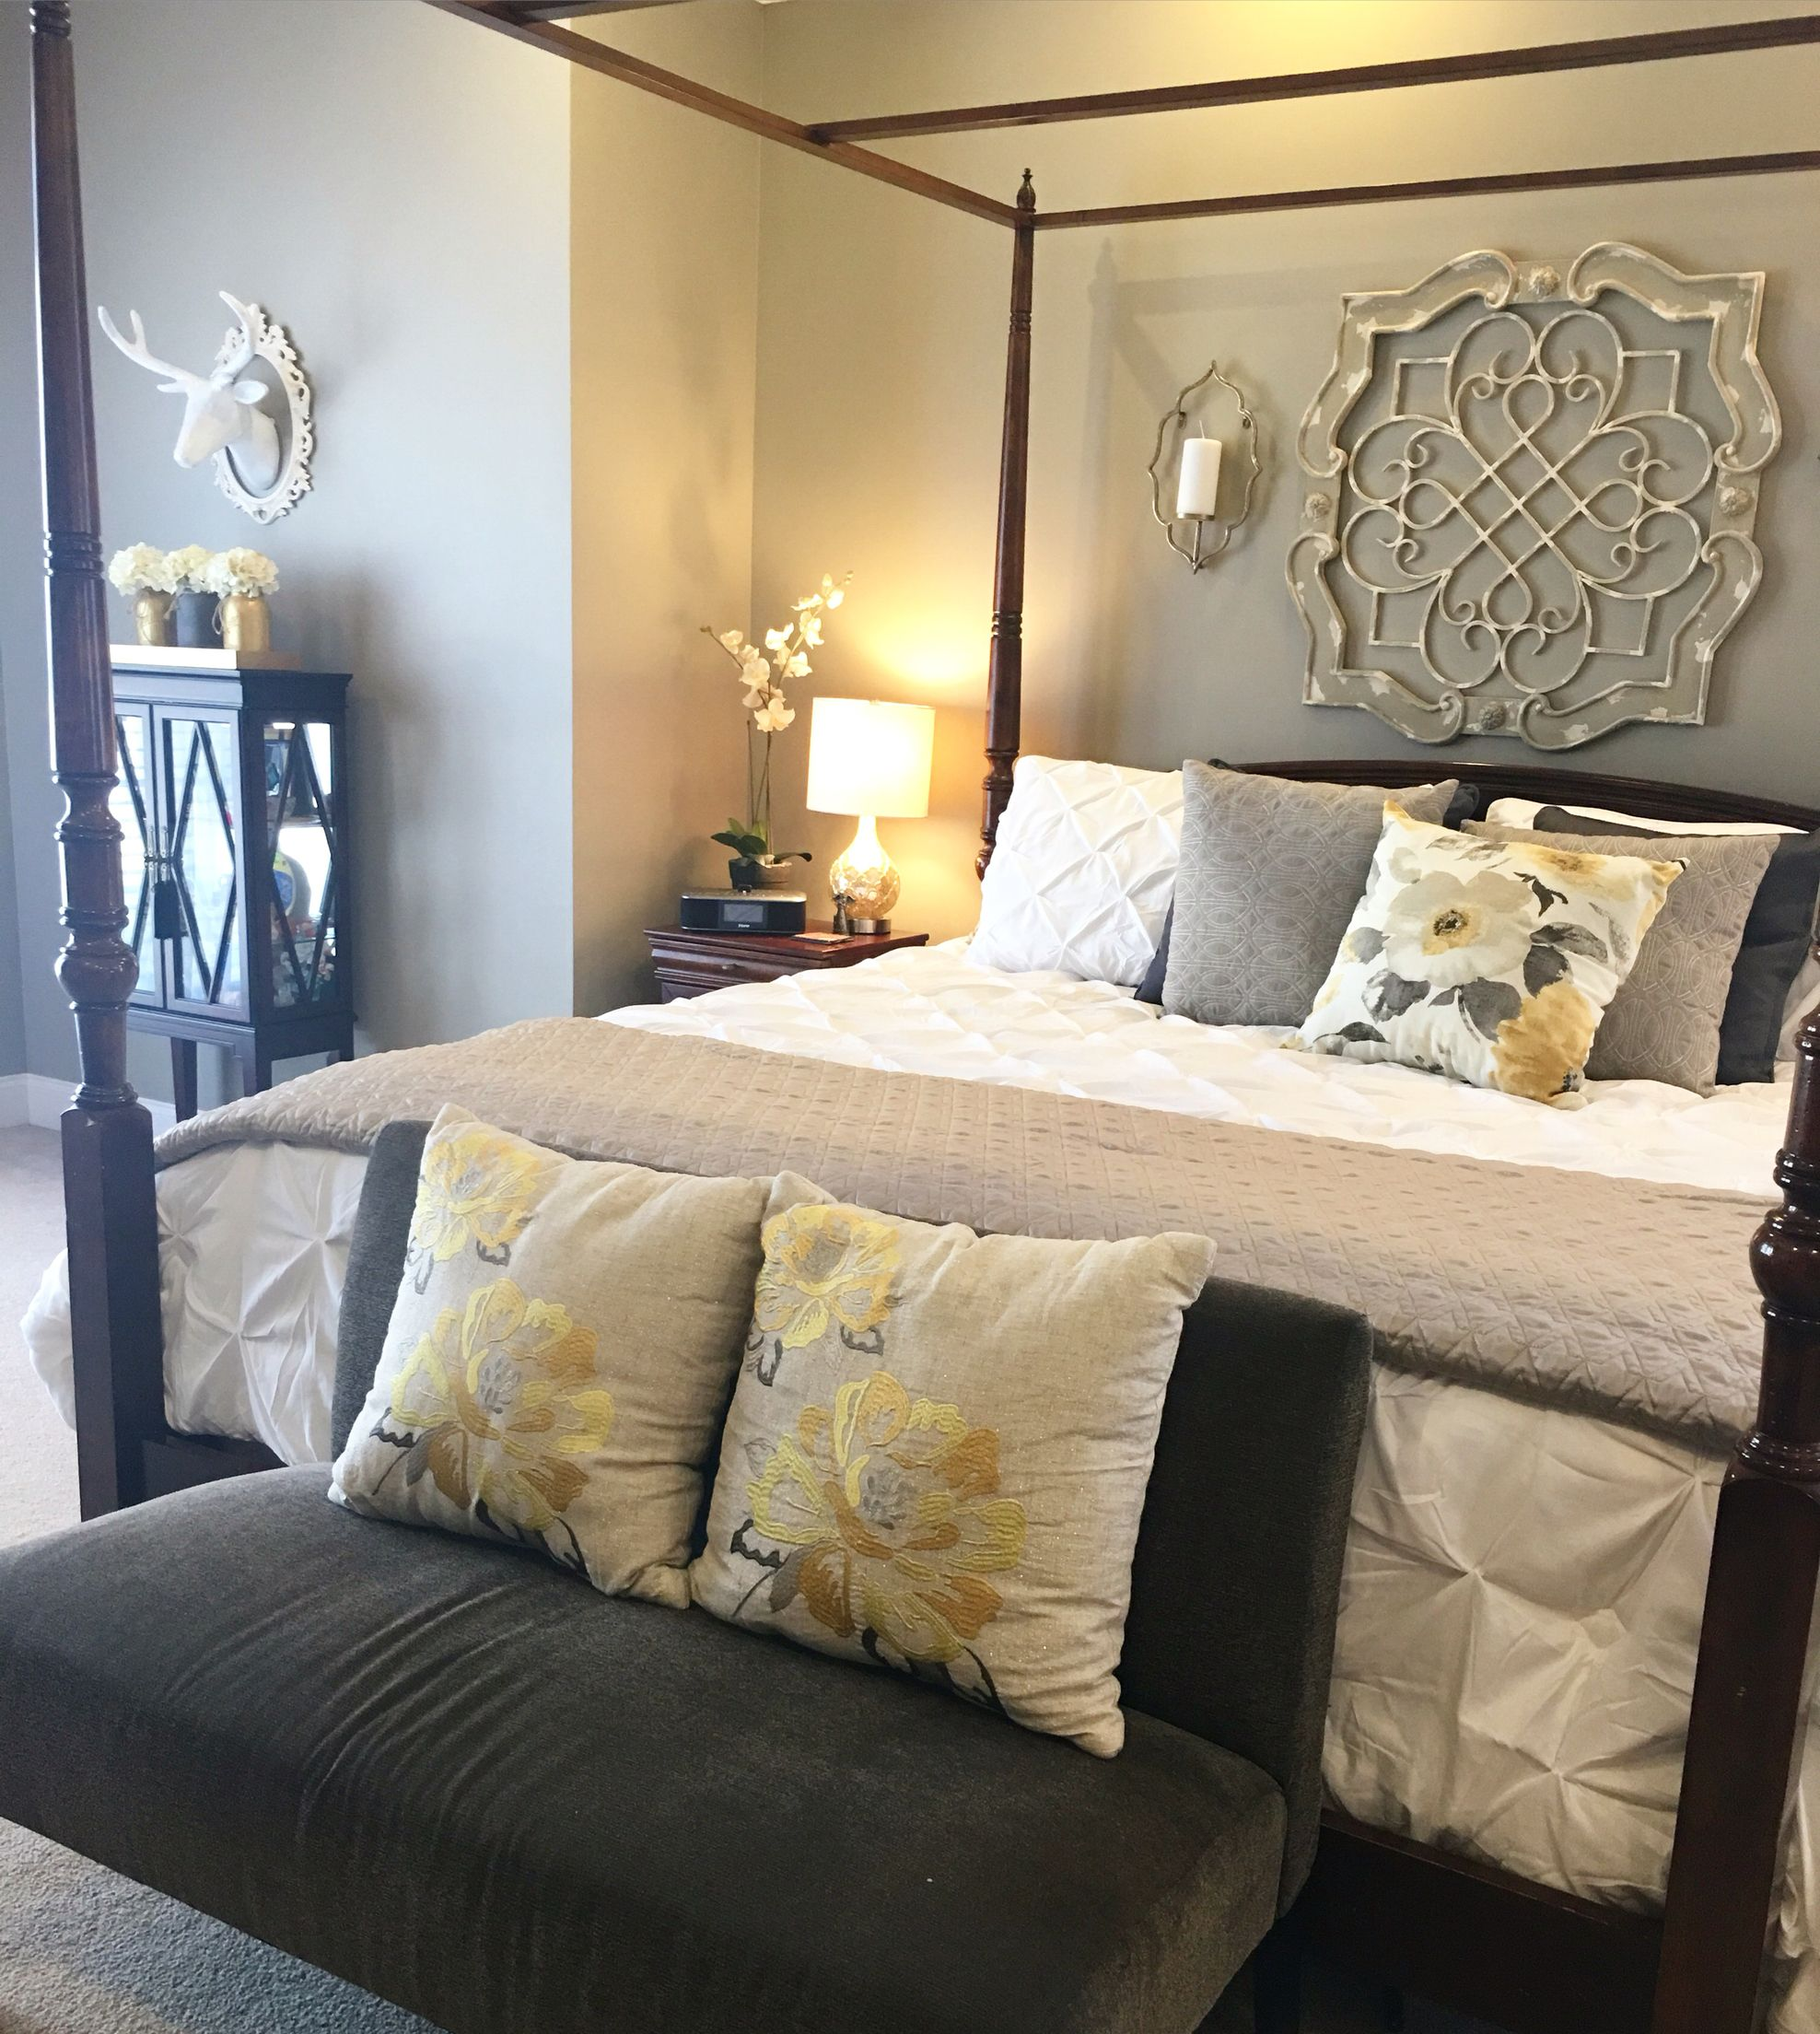 My master bedroom makeover Walls Sherwin Williams Intellectual